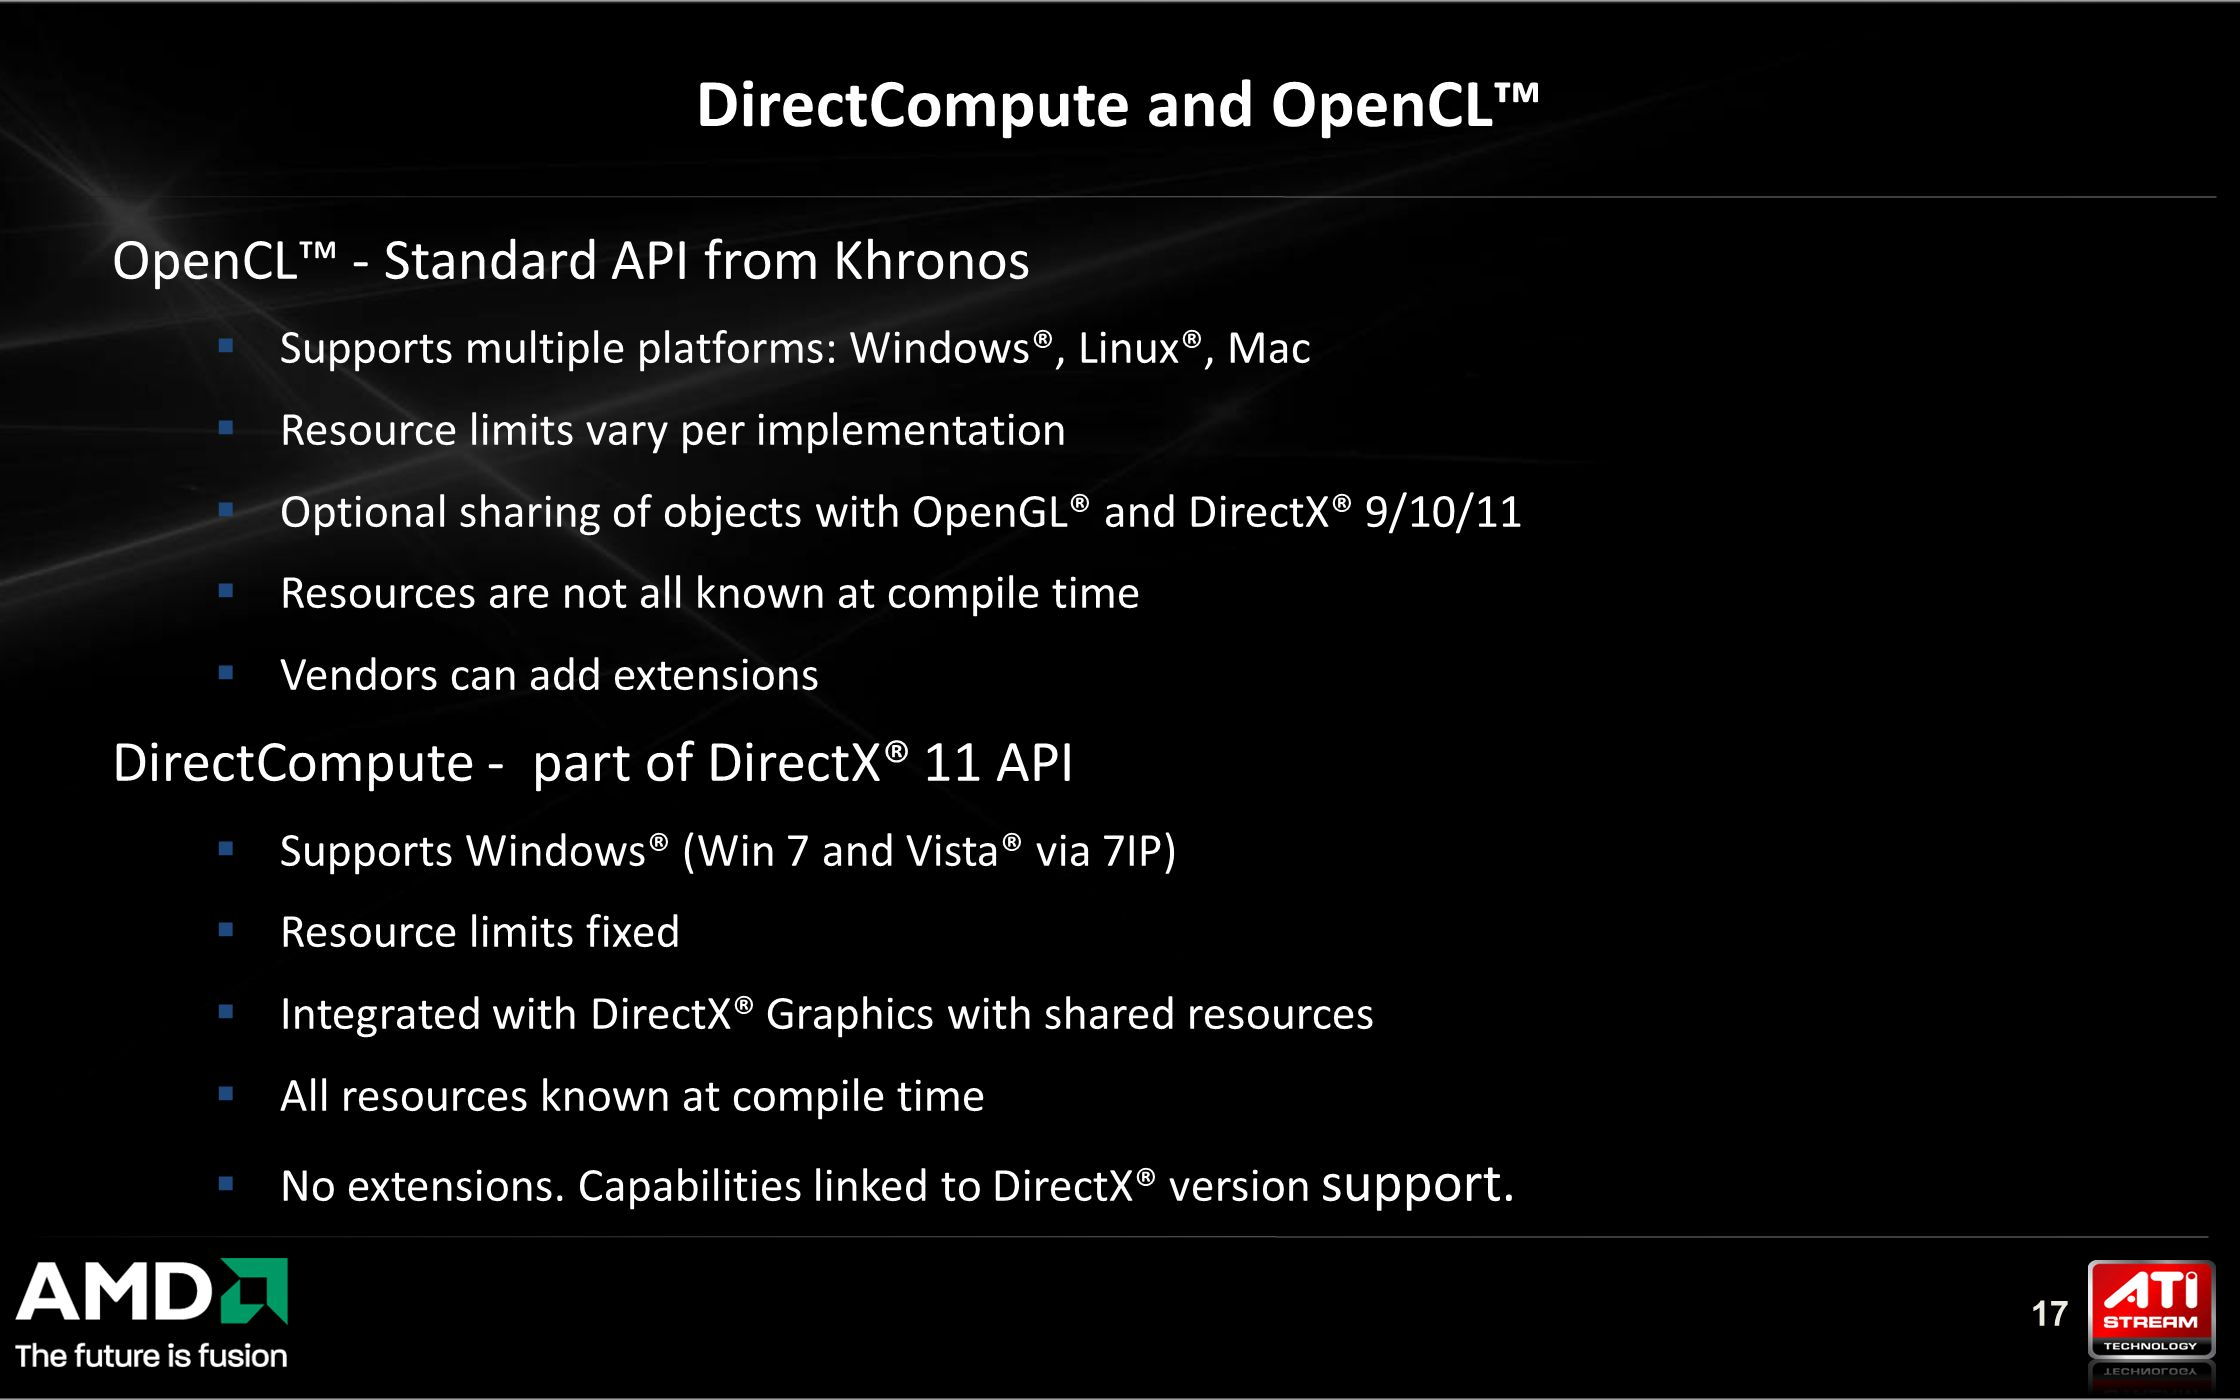 17 OpenCL™ - Standard API from Khronos  Supports multiple platforms: Windows®, Linux®, Mac  Resource limits vary per implementation  Optional sharing of objects with OpenGL® and DirectX® 9/10/11  Resources are not all known at compile time  Vendors can add extensions DirectCompute - part of DirectX® 11 API  Supports Windows® (Win 7 and Vista® via 7IP)  Resource limits fixed  Integrated with DirectX® Graphics with shared resources  All resources known at compile time  No extensions.